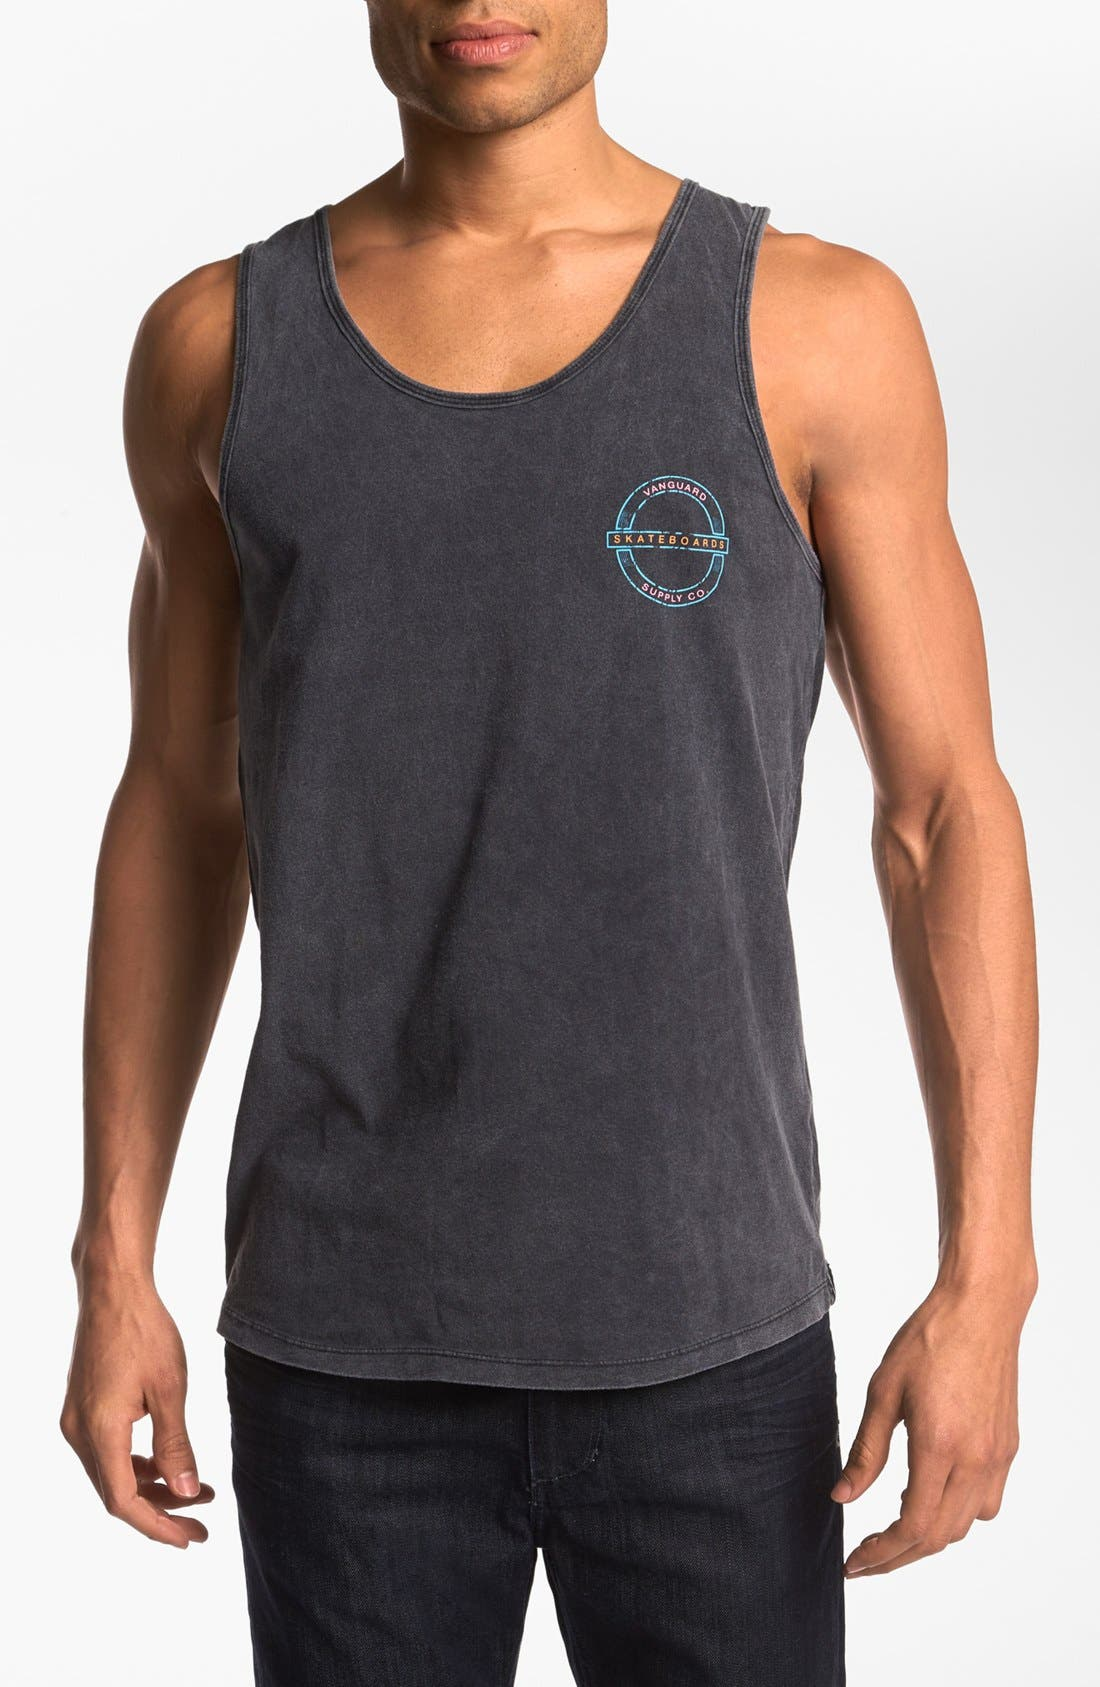 Main Image - Vanguard 'Skate Supply' Tank Top